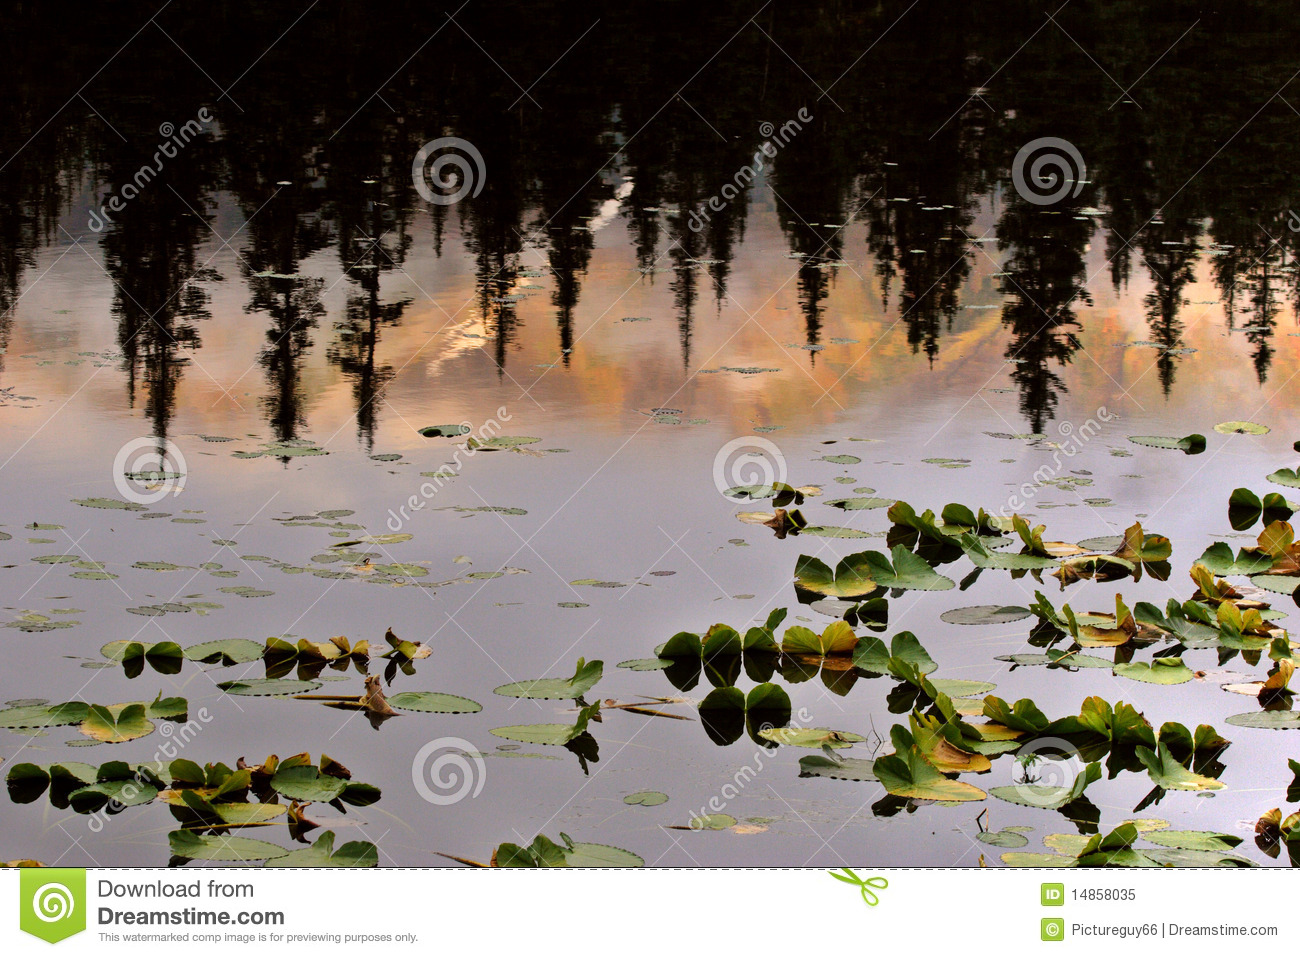 Water Lilly leaves and reflection